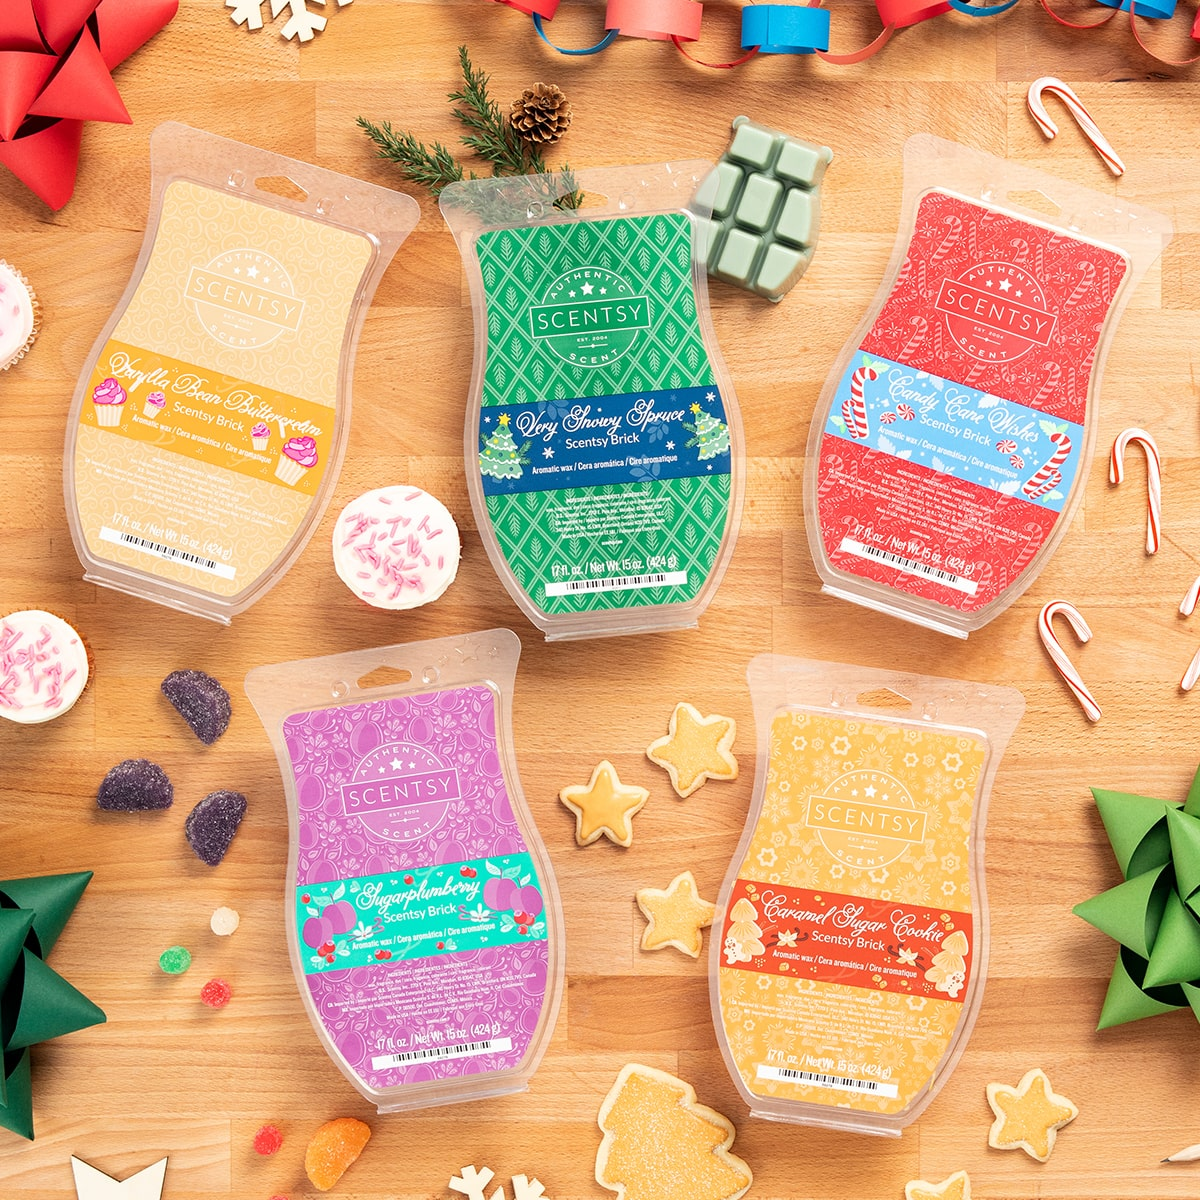 SCENTSY BRICKS ALL 2019